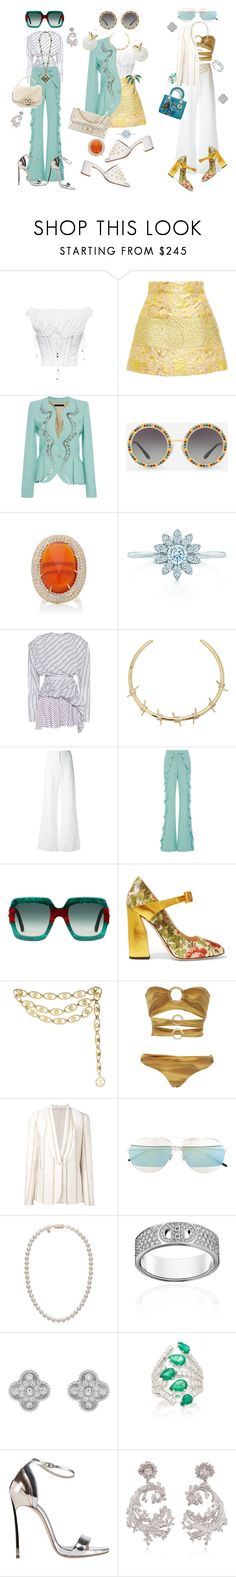 """""""£192,396"""" by fendilicious ❤ liked on Polyvore featuring Dolce&Gabbana, LUISA BECCARIA, Elie Saab, Chanel, Pamela Huizenga, Balenciaga, Fallon, Ann Demeulemeester, Gucci and Triya"""